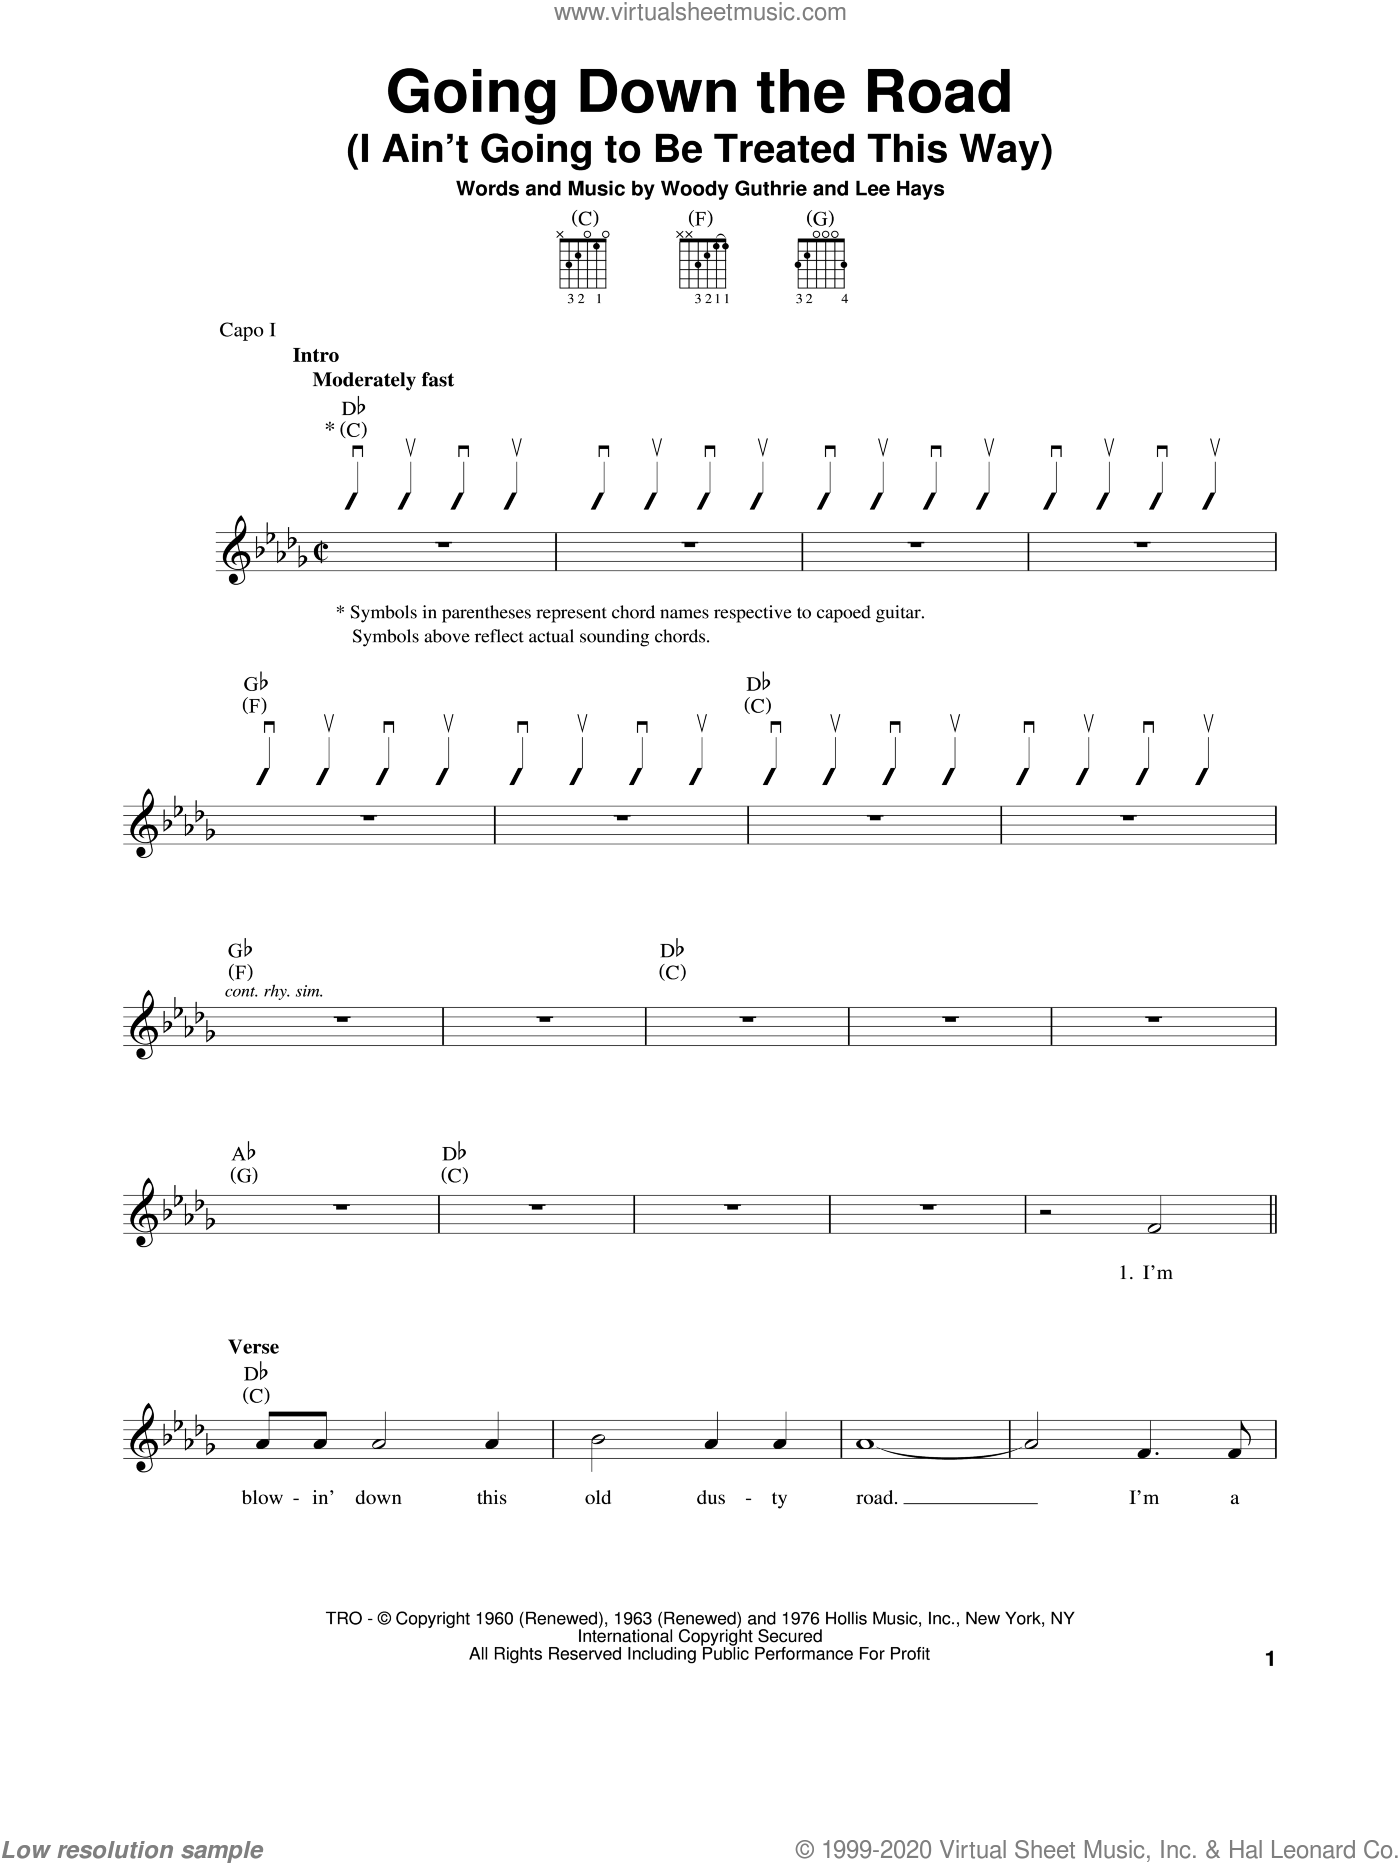 Going Down The Road (I Ain't Going To Be Treated This Way) sheet music for guitar solo (chords) by Woody Guthrie and Lee Hays, easy guitar (chords)